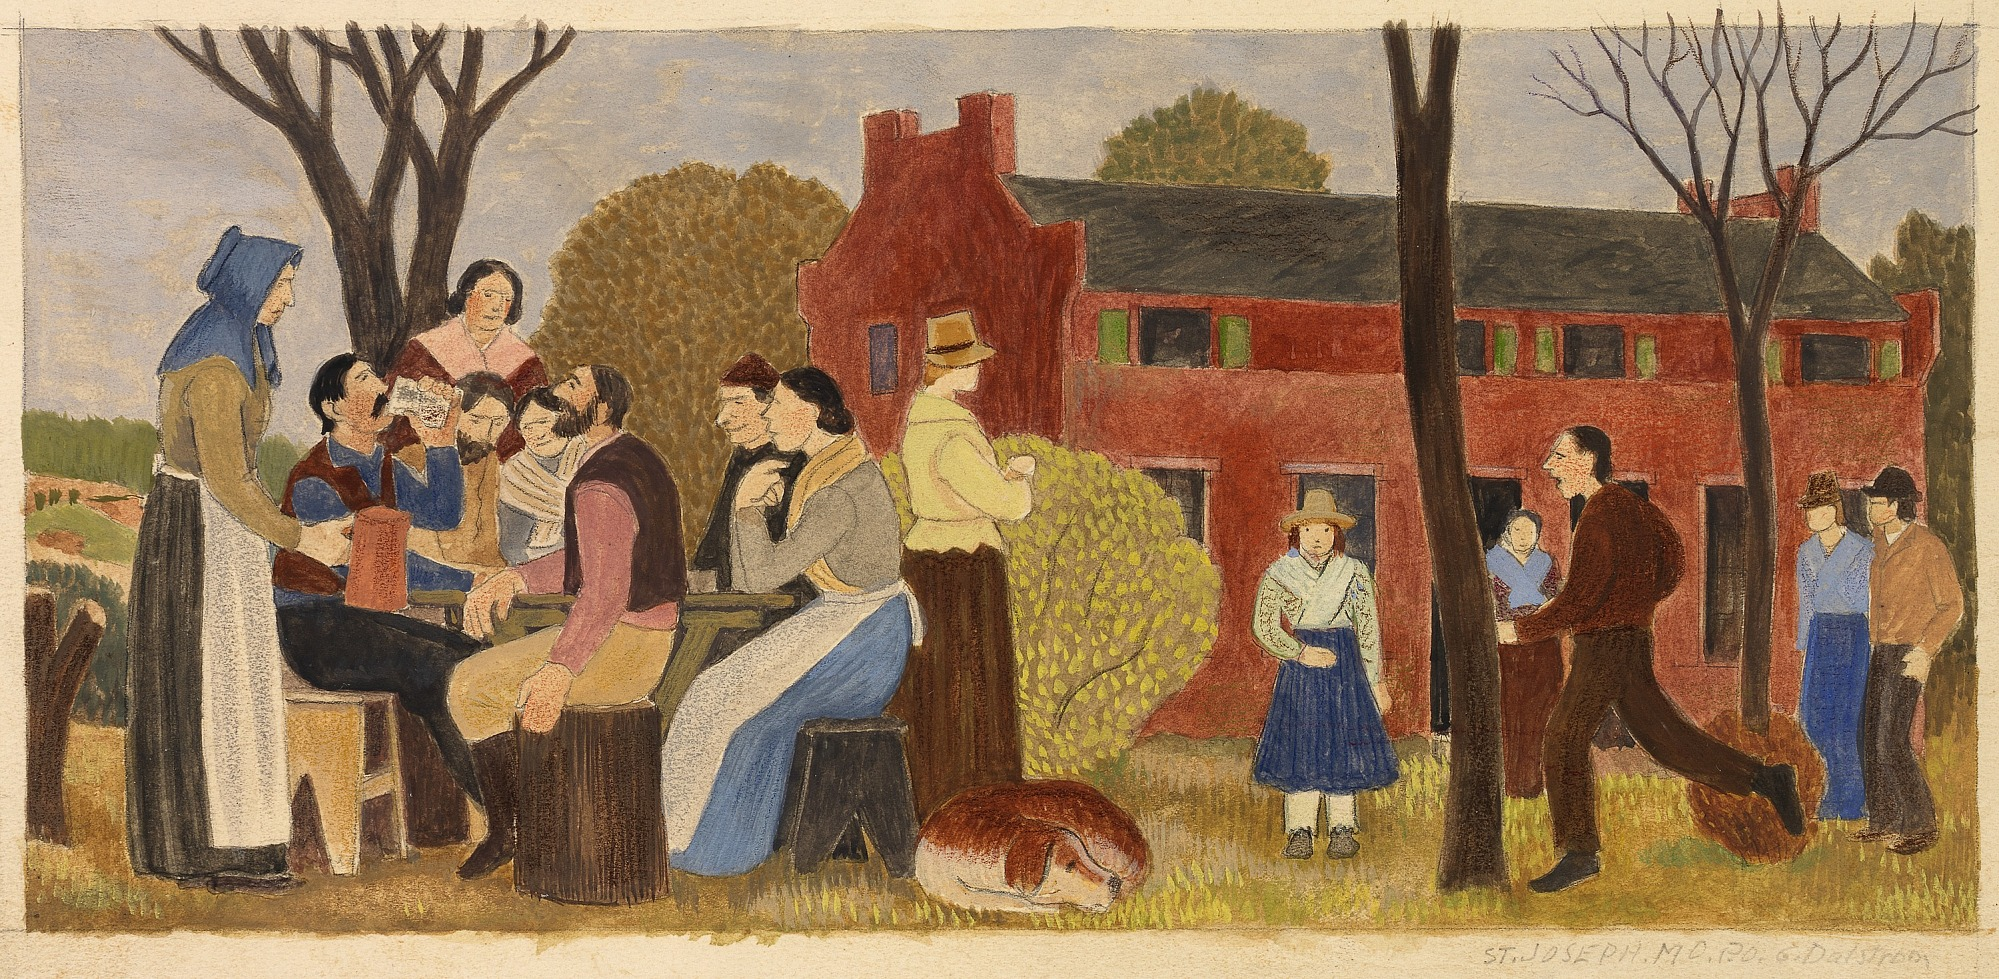 (Untitled) (mural study, St. Joseph, Missouri Post Office and Courthouse)